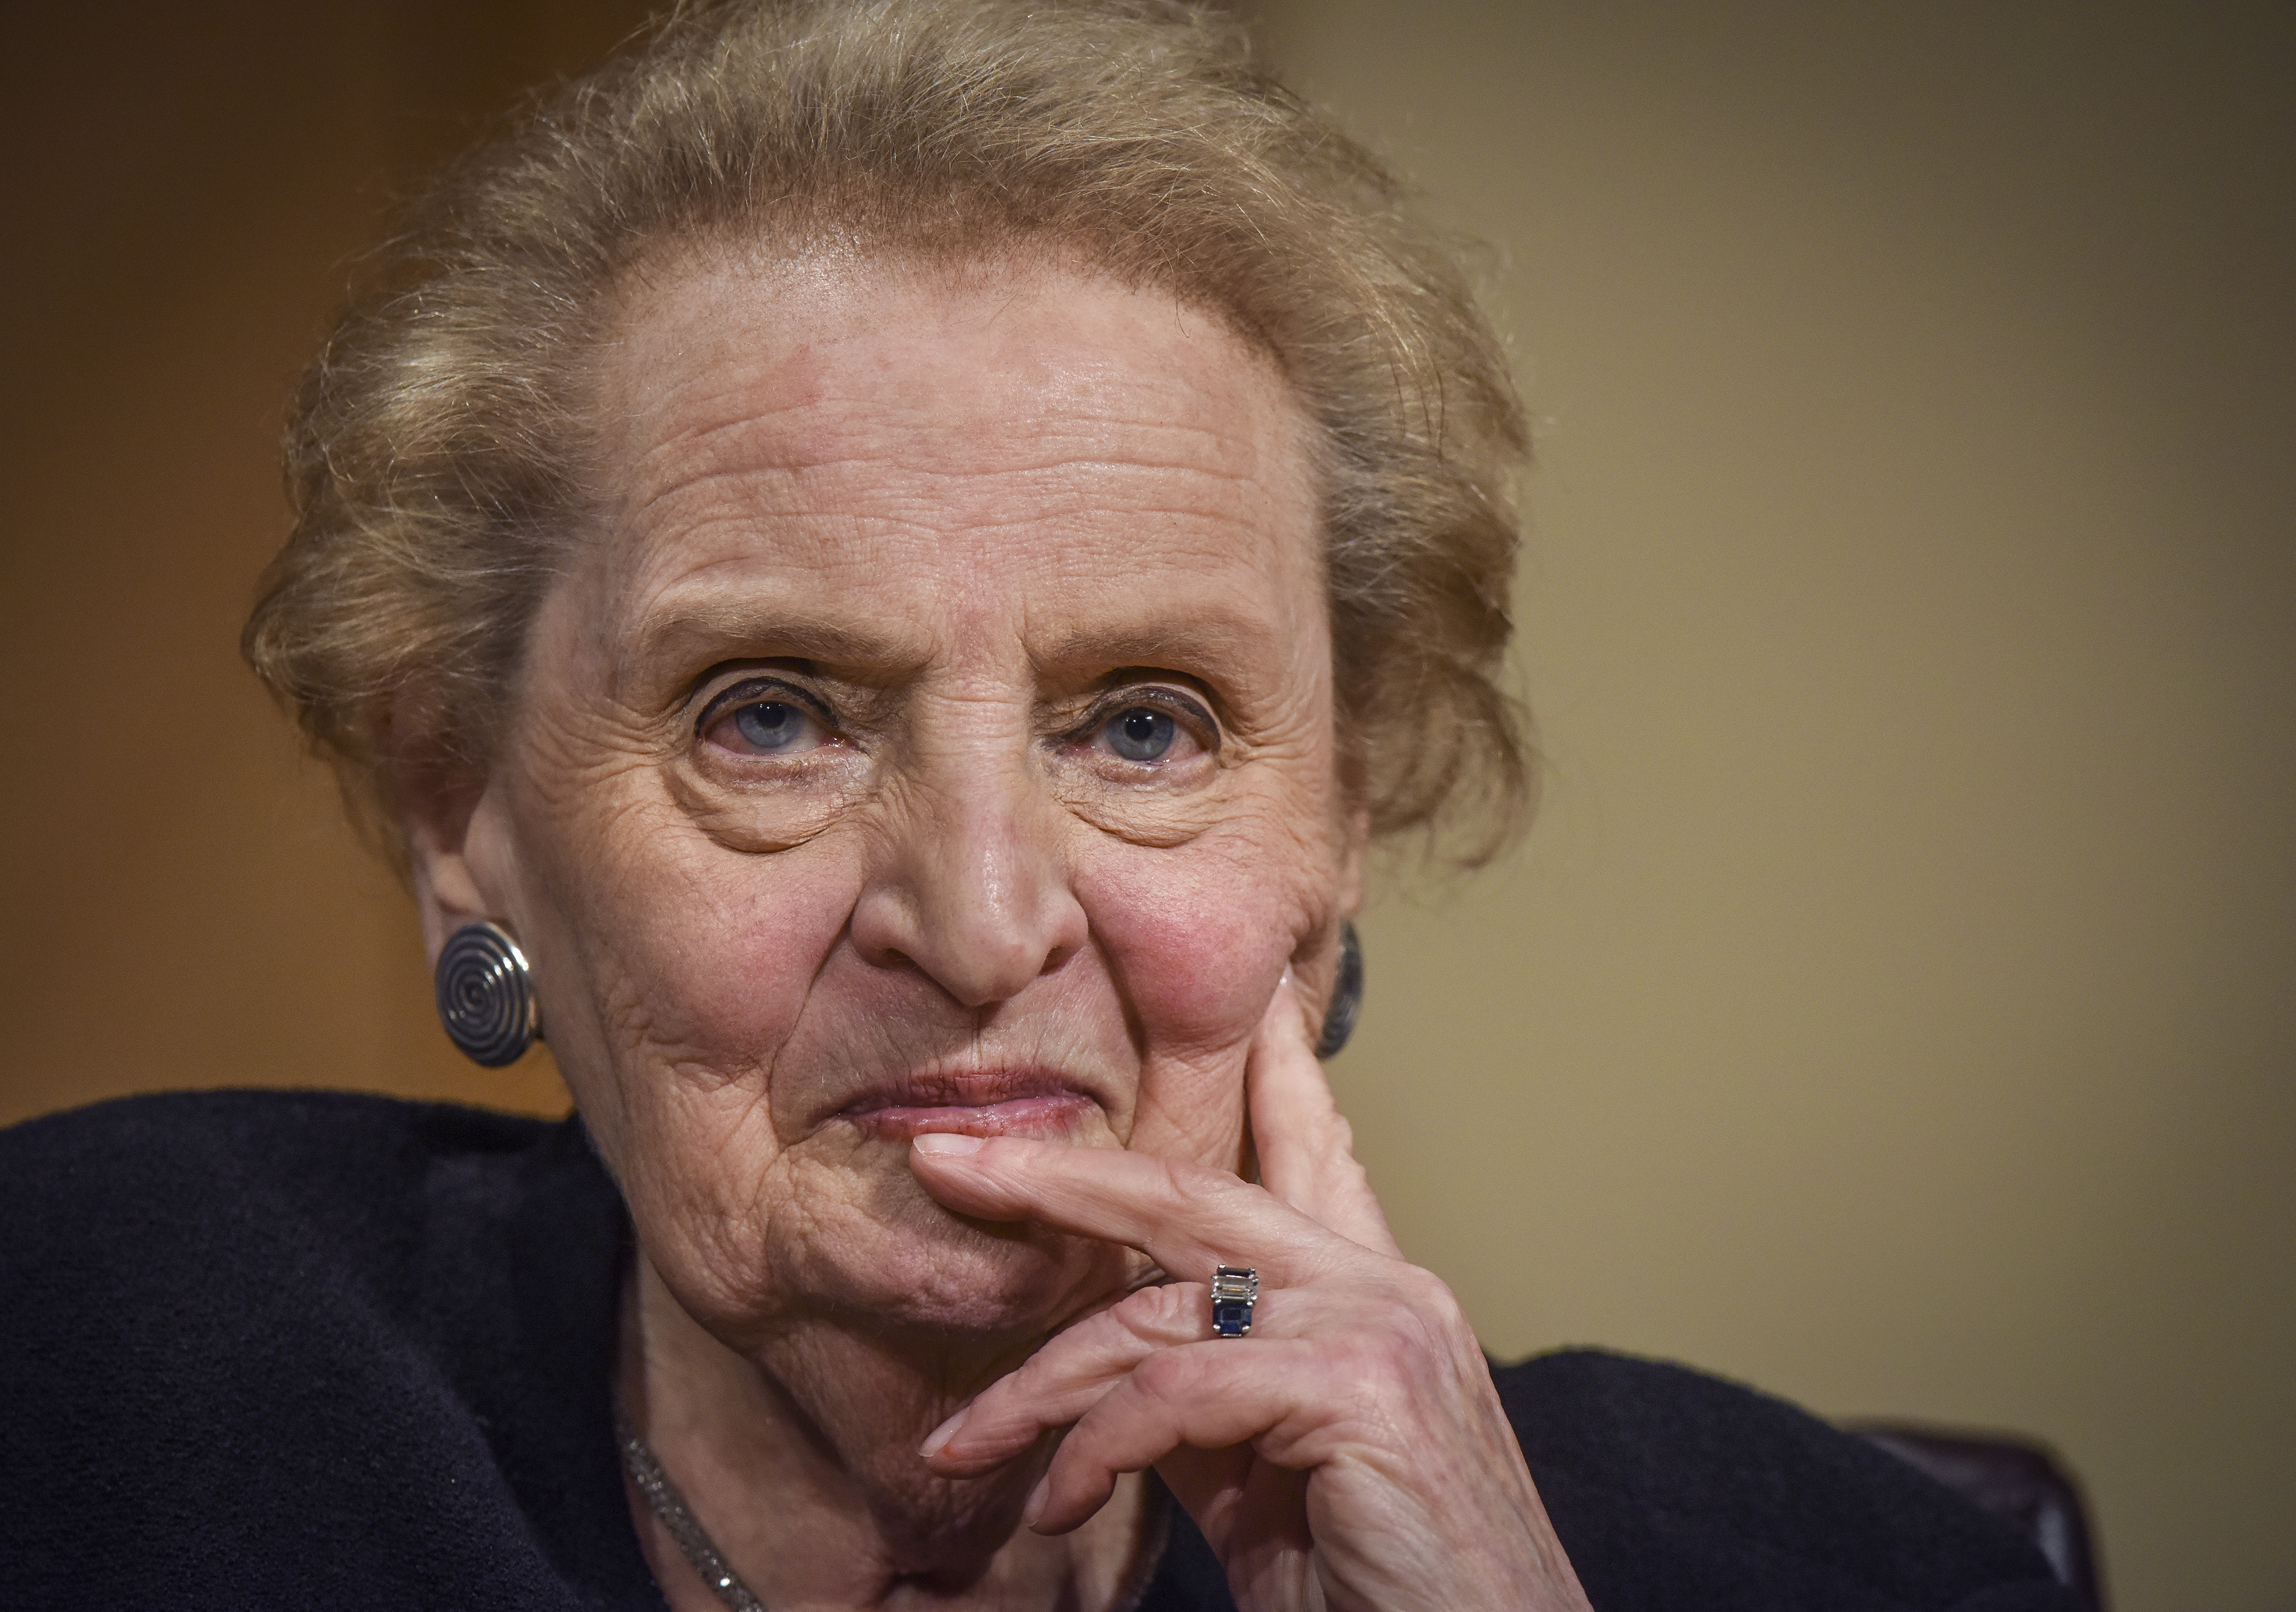 Former Secretary of State Madeleine Albright with her hand on her head